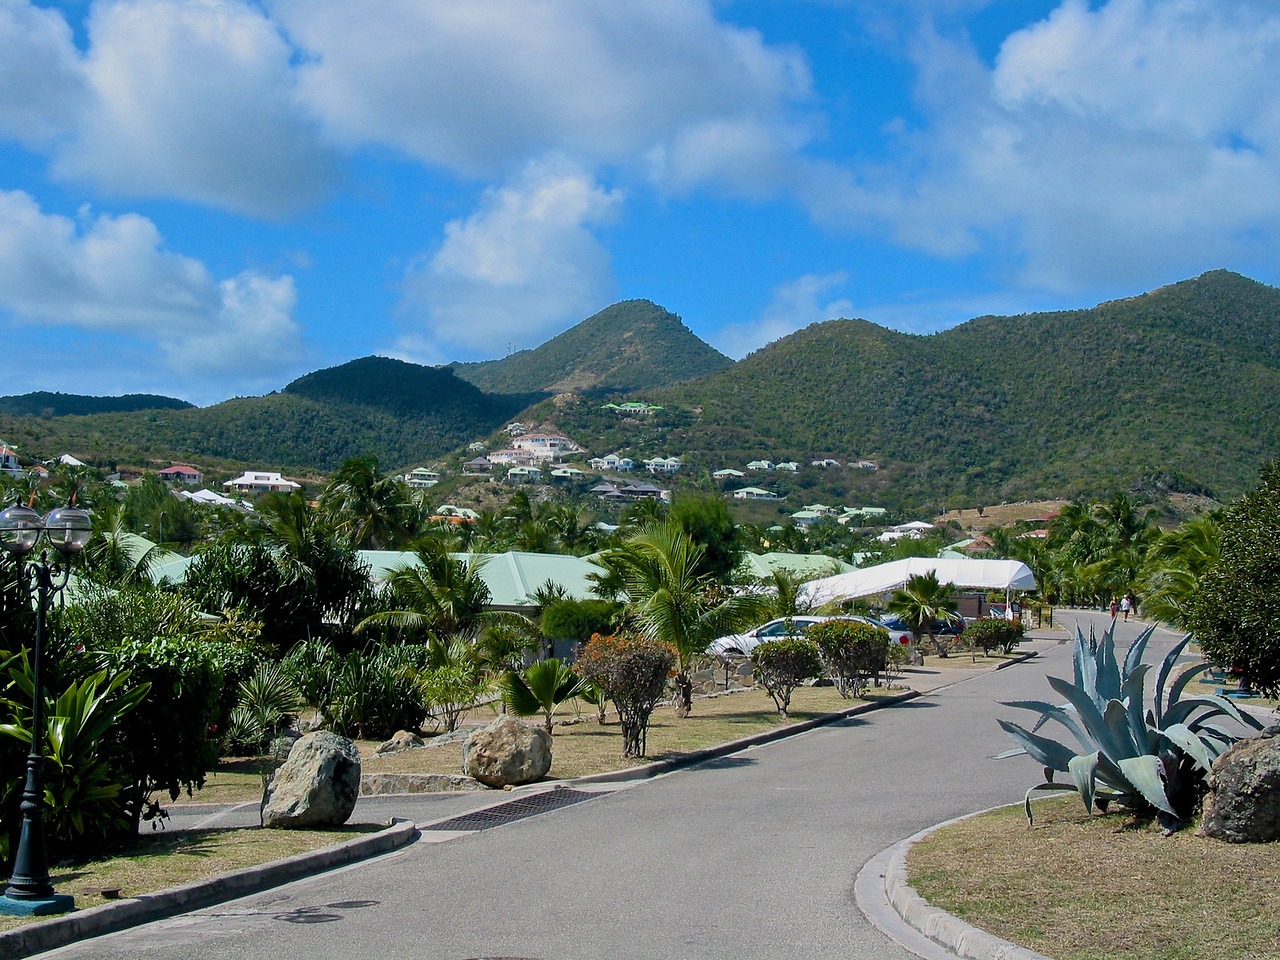 The island's French side is known for its nude beaches, clothes, shopping (including outdoor markets), and rich French and Indian Caribbean cuisine.